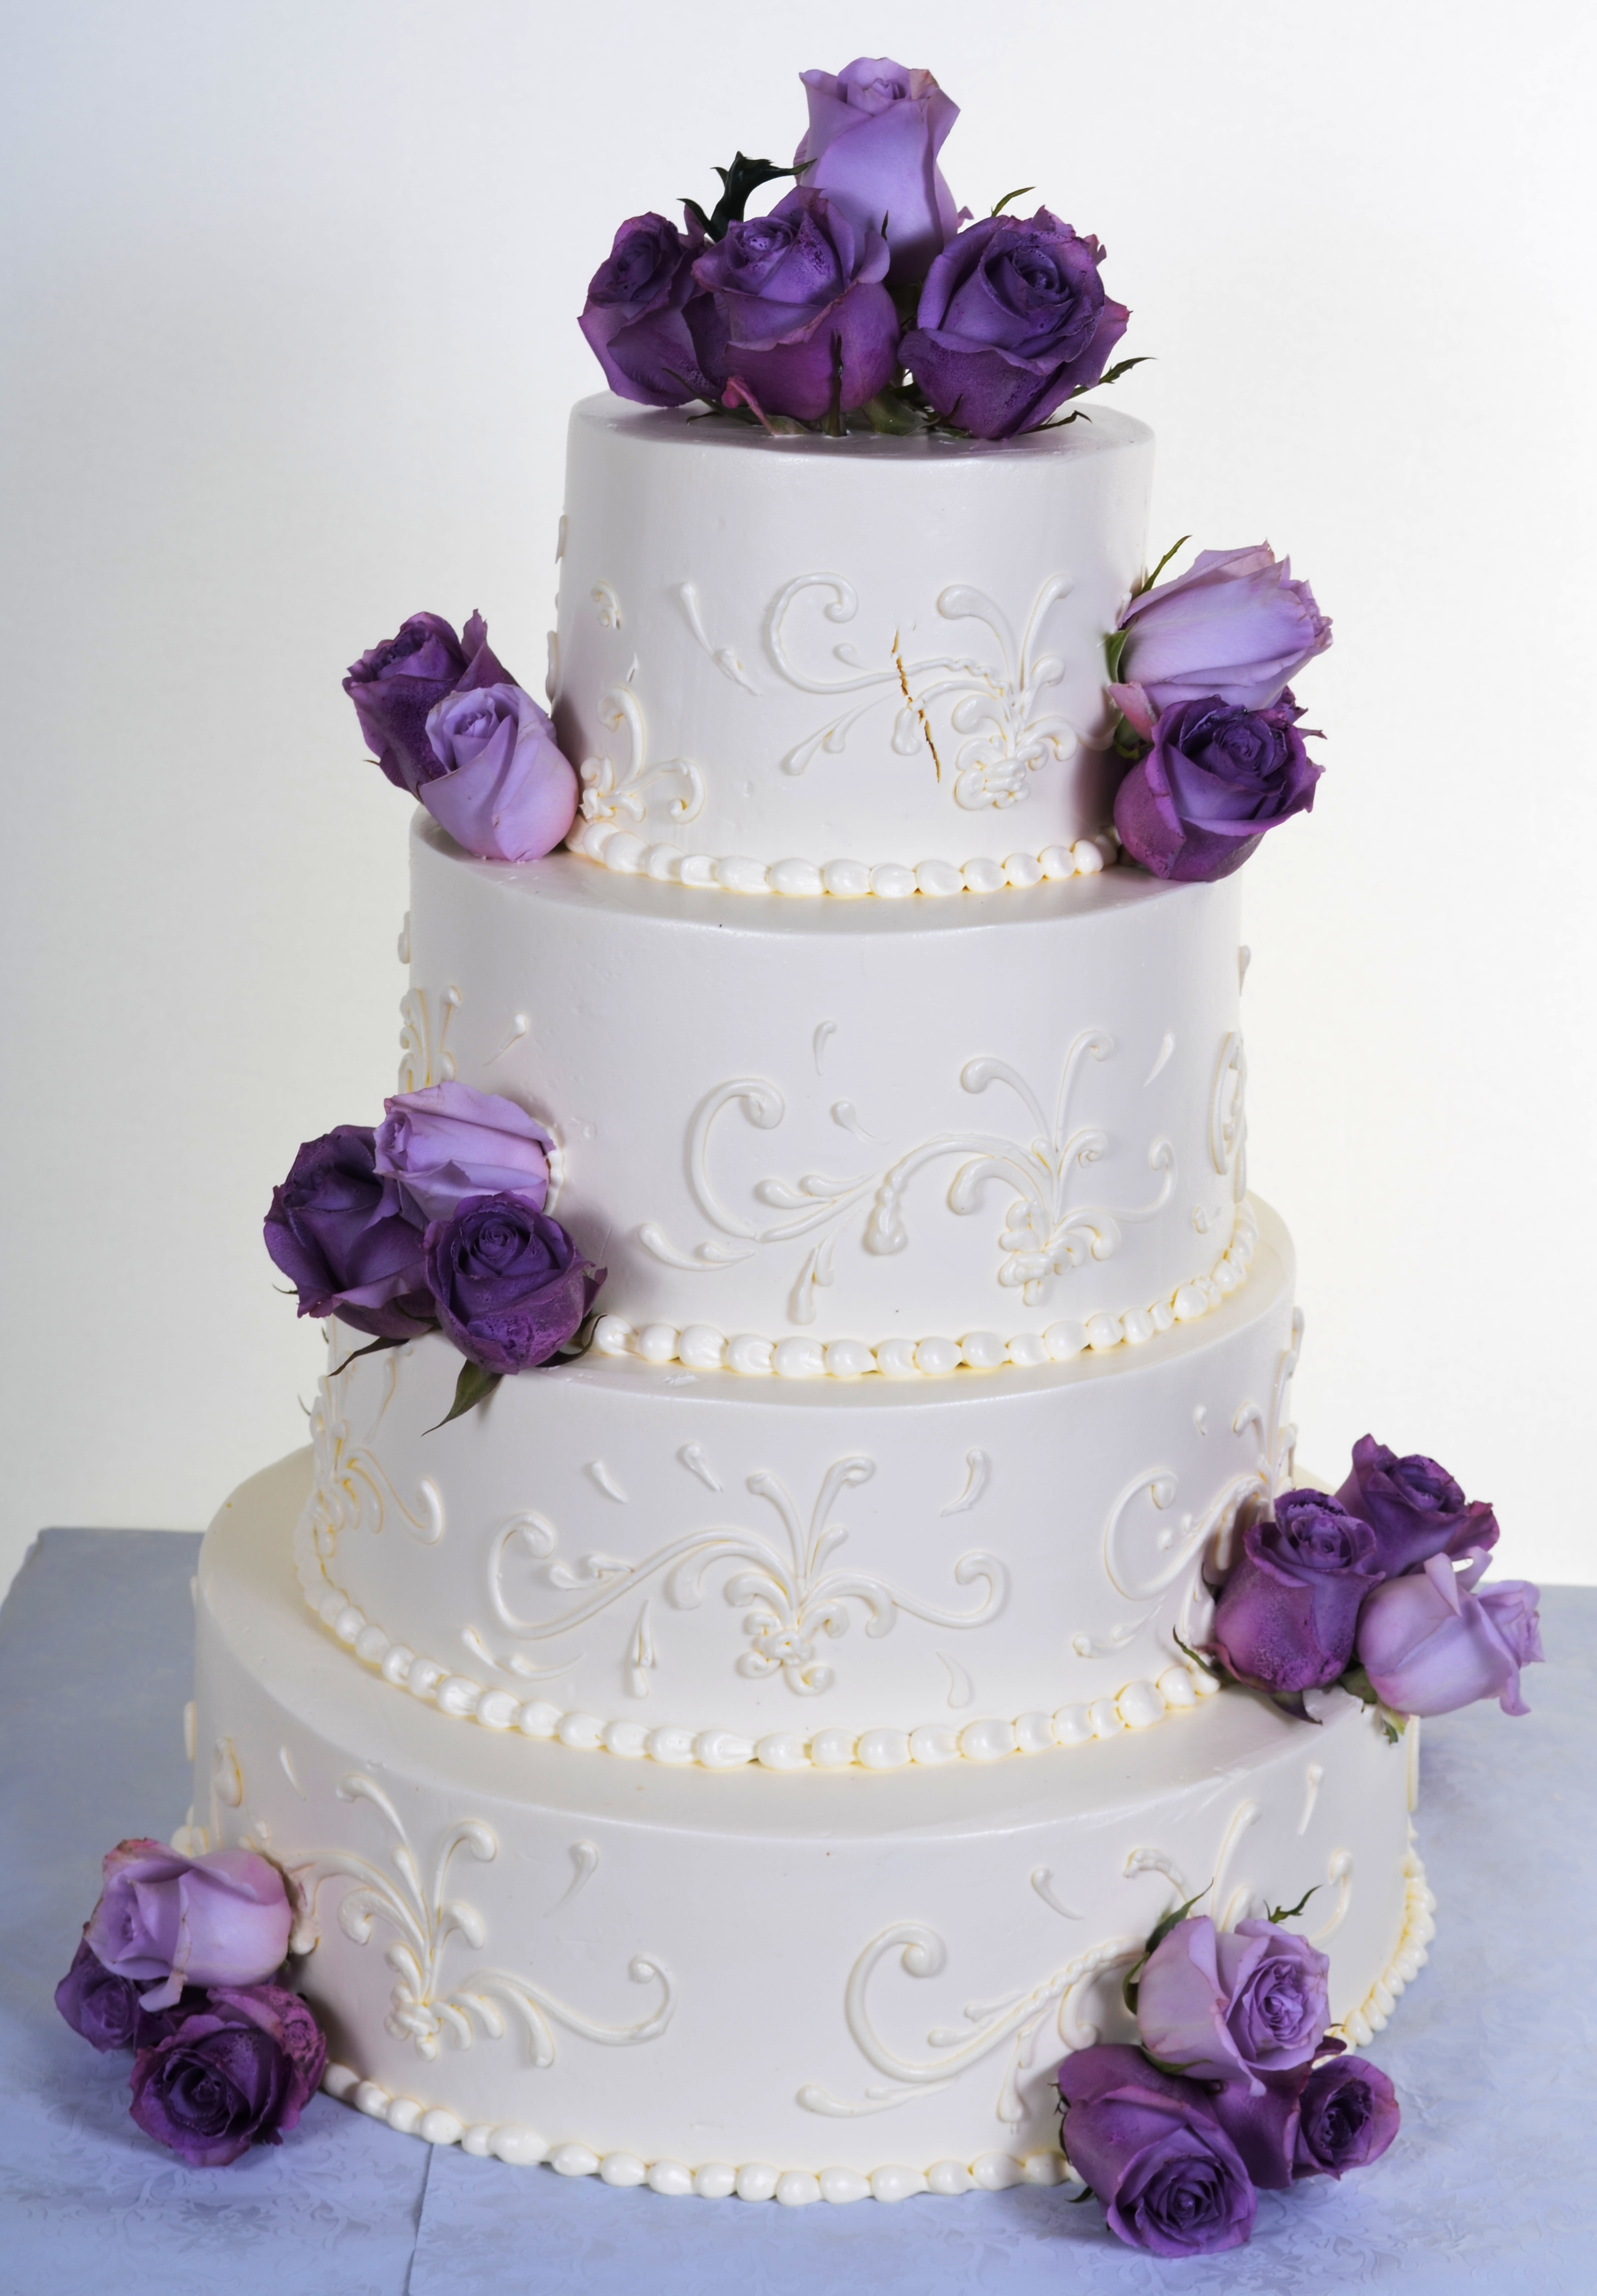 The Lavender Rose Is Often Used To Convey Enchantment And Love At First Sight How Fitting That These Beautifully Crafted Blooms Accent A Traditional